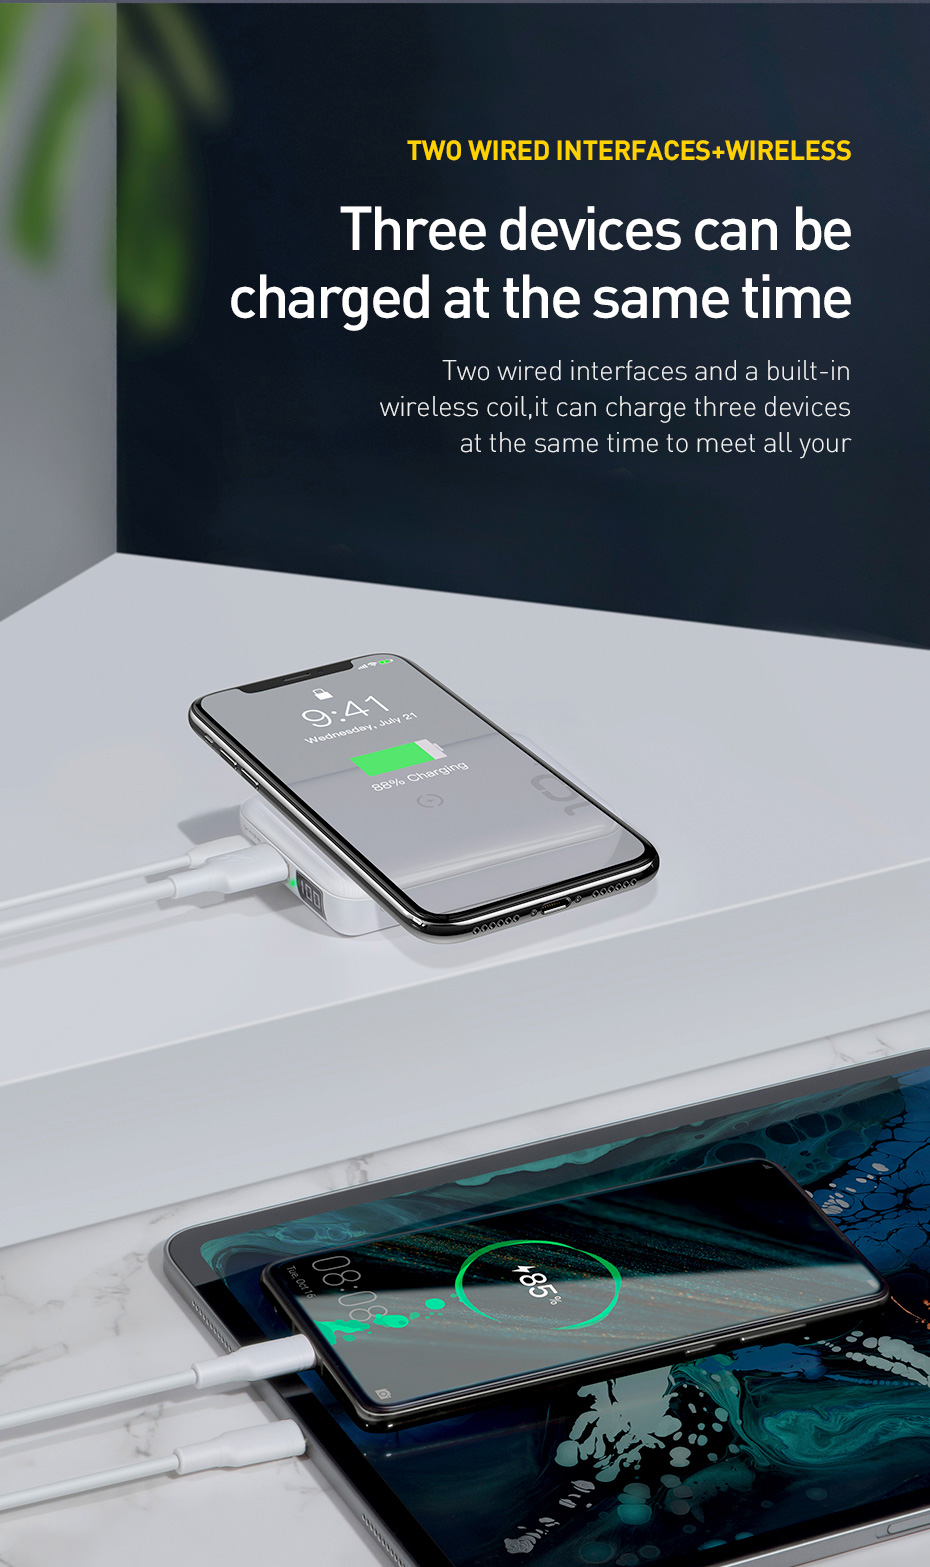 Baseus 10000mAh Qi Wireless Charger Power Bank for iPhone Samsung Huawei Powerbank PD Quick Charge 3.0 Portable External Battery 15